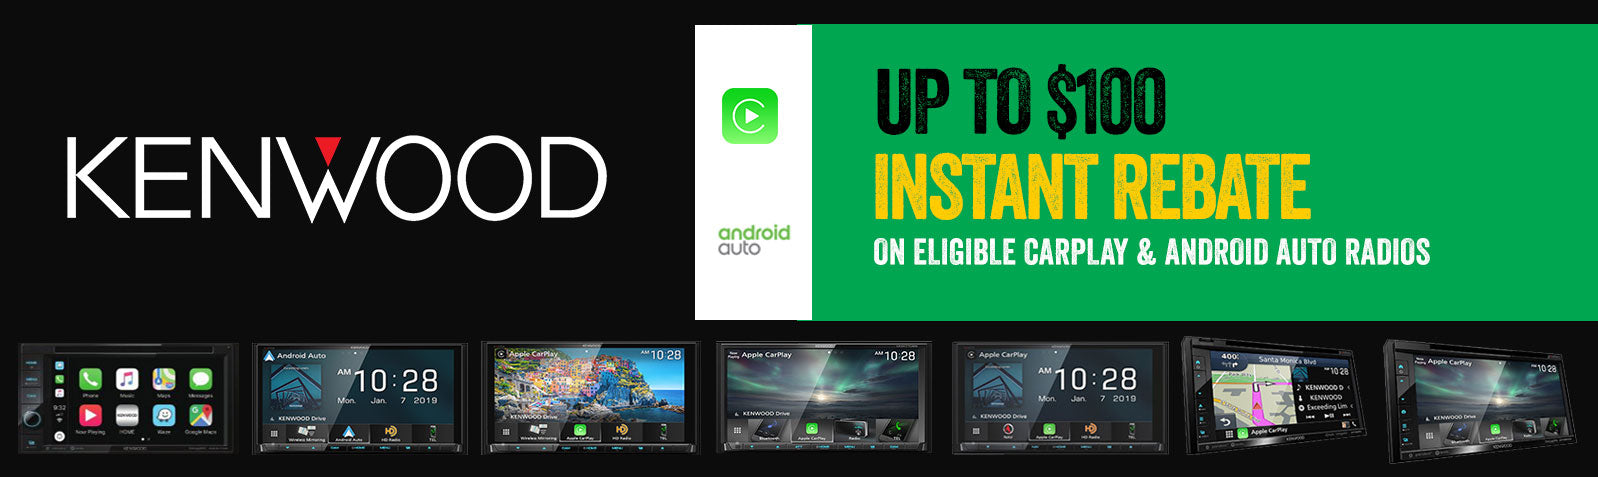 Up to $100 Instant Rebate On Eligible Carplay and Android Auto Radios